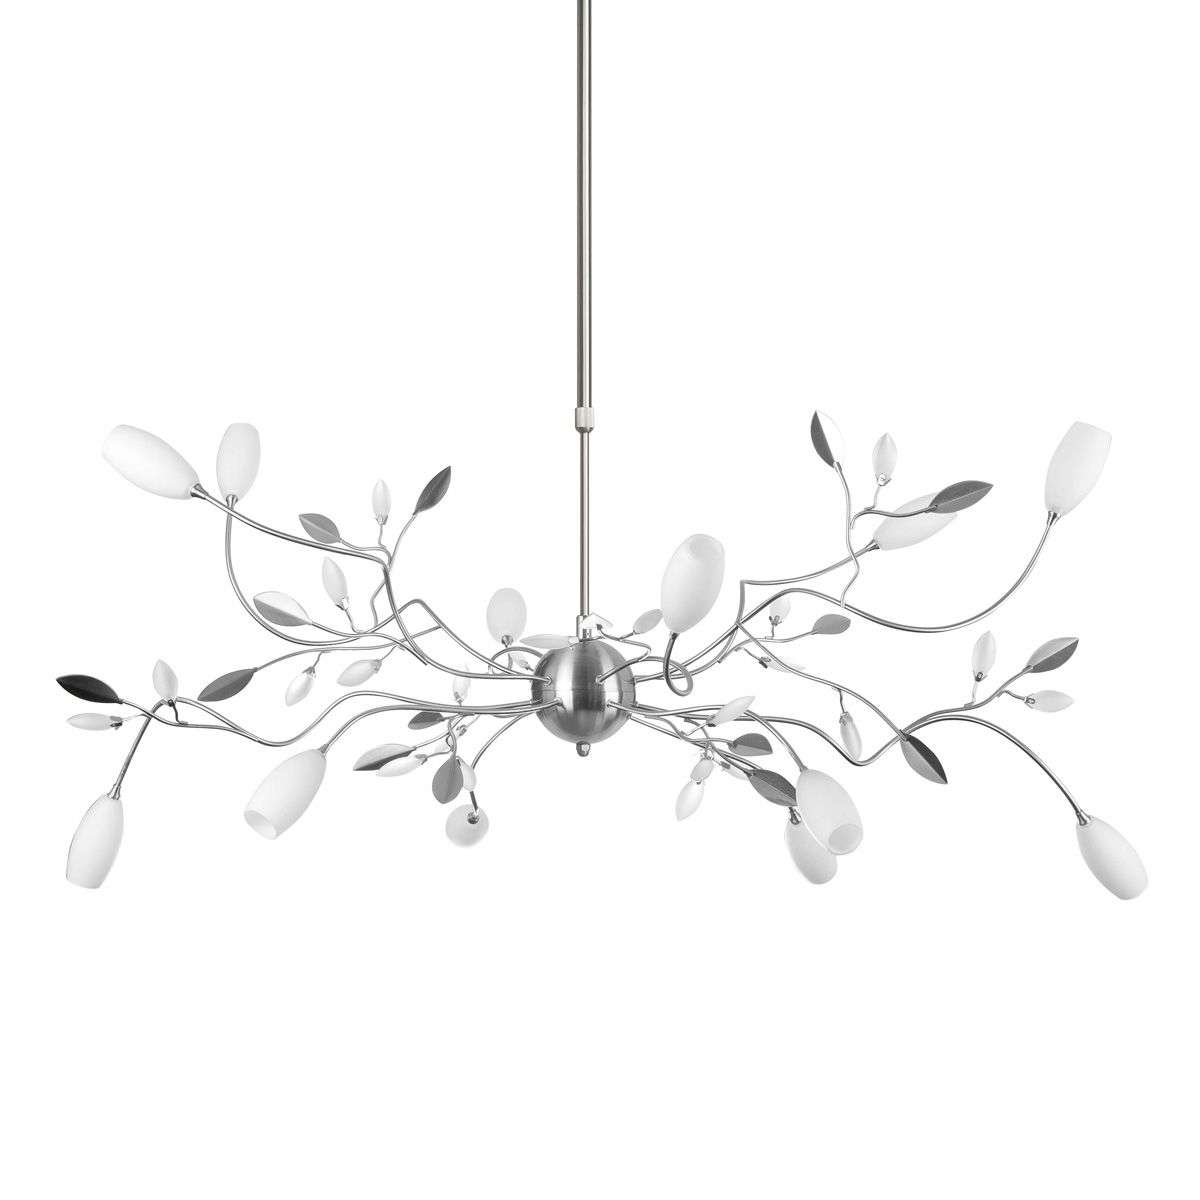 Height adjustable floral pendant lamp grosseto lights height adjustable floral pendant lamp grosseto 4540051 31 aloadofball Image collections